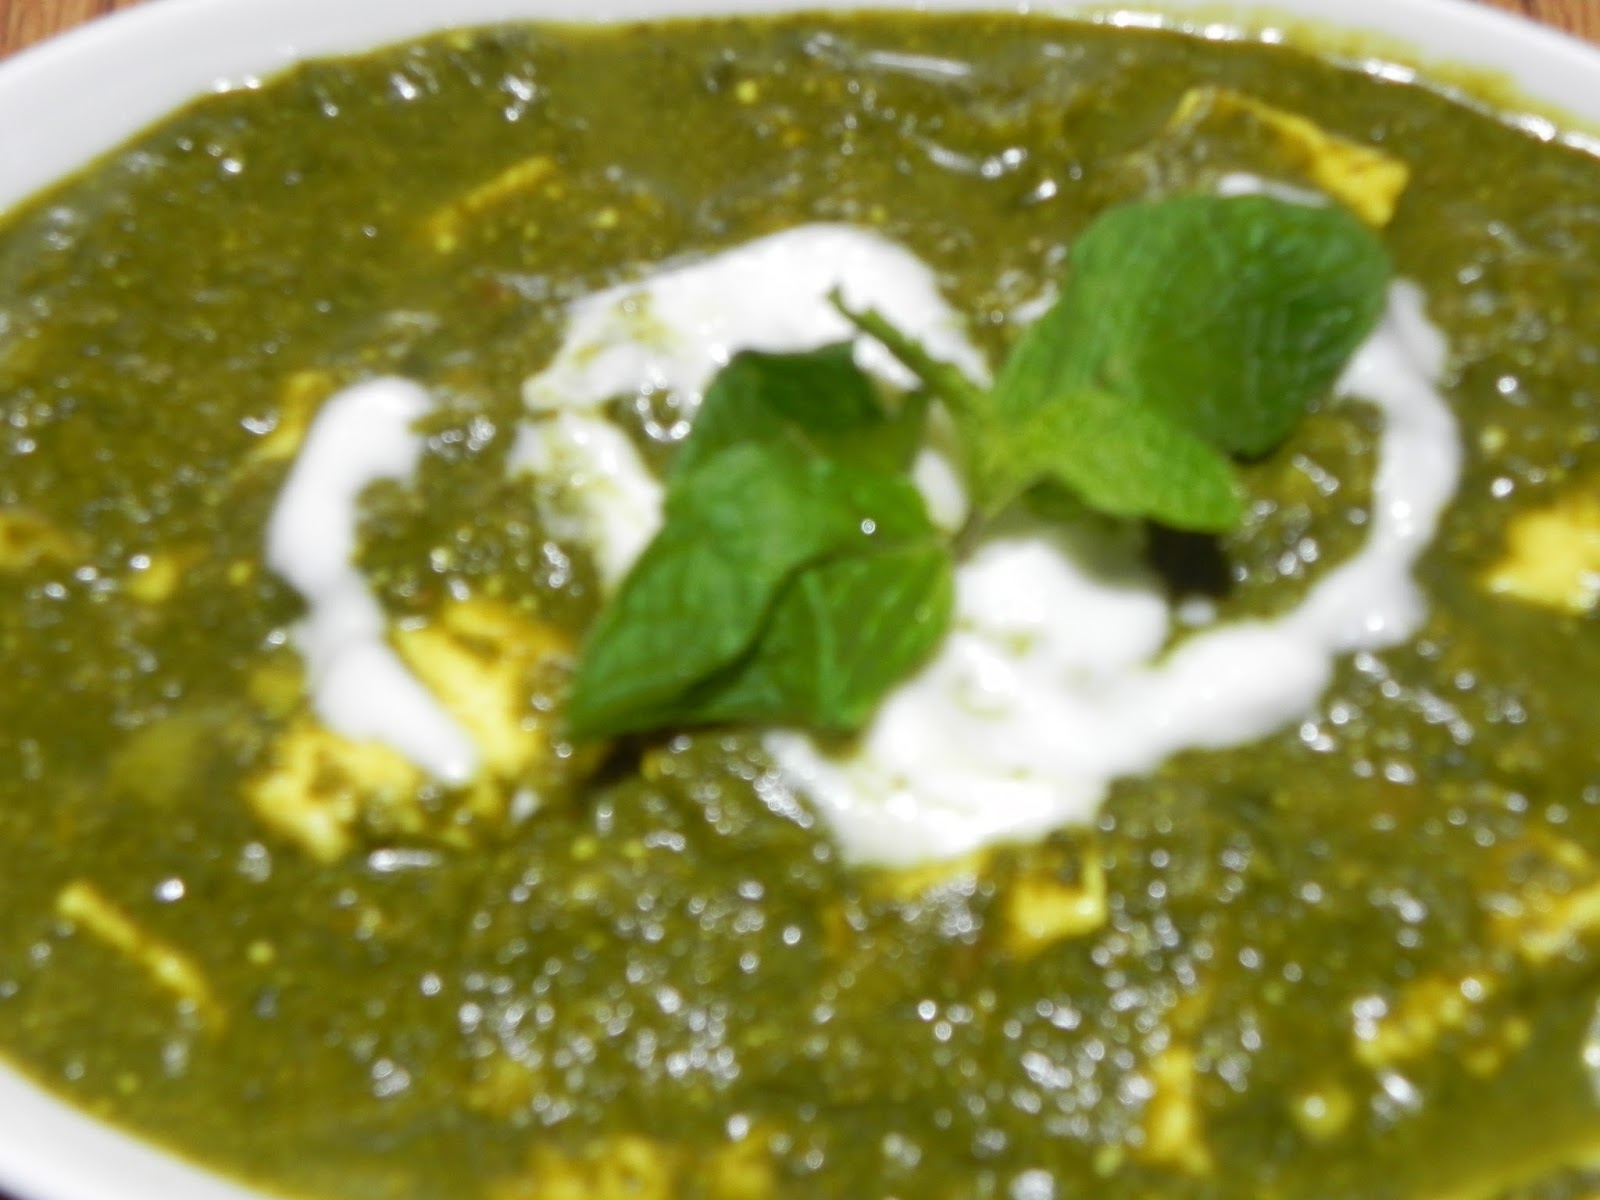 Sachi's Kitchen: Palak-Paneer (Spinach-Cottage Cheese) Recipe